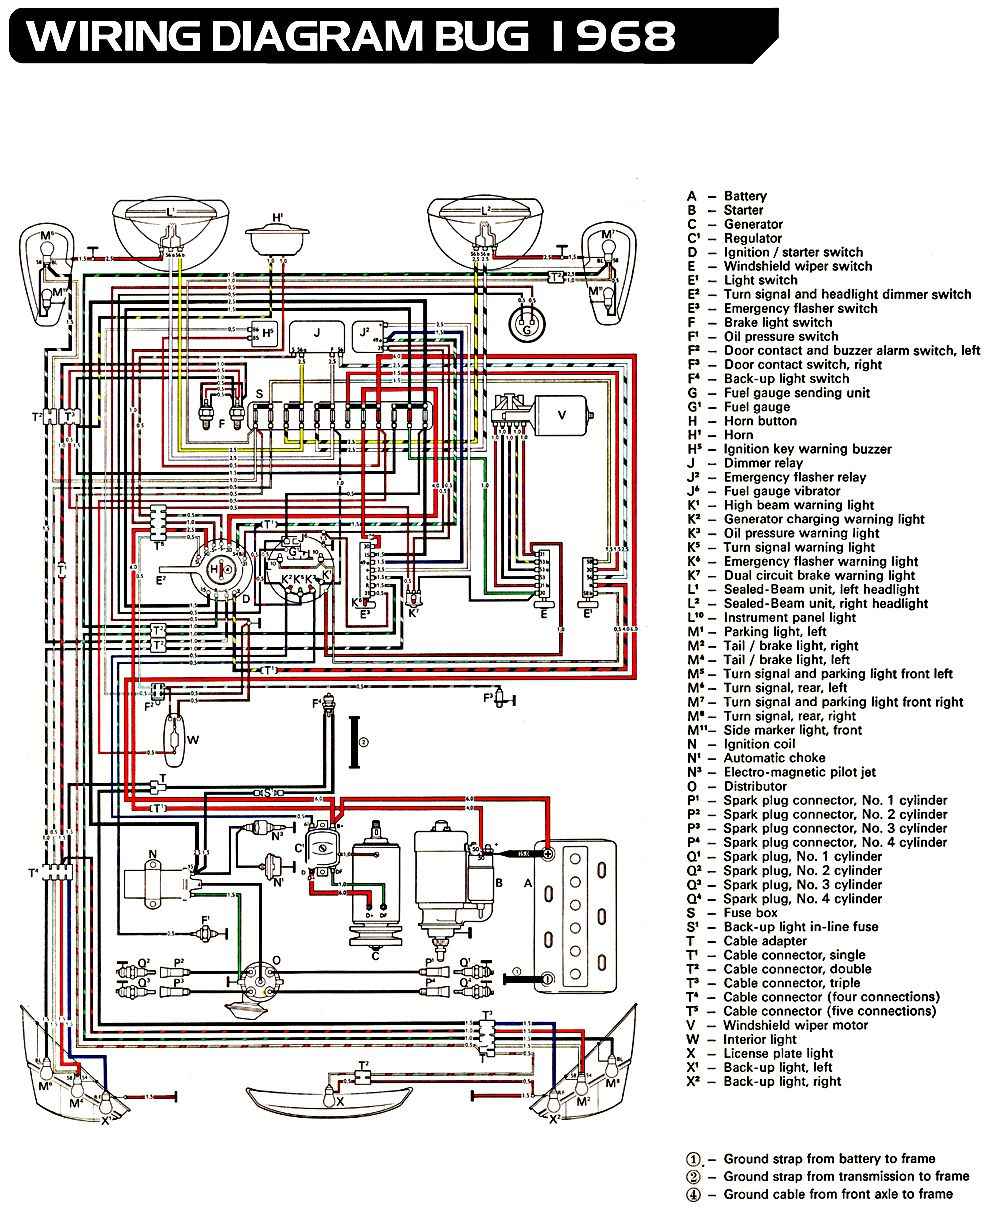 3a1908112d3826270ed5e3be362292bf vw bug ignition wiring diagram 73 vw wiring diagram free vw beetle wiring diagram at mr168.co